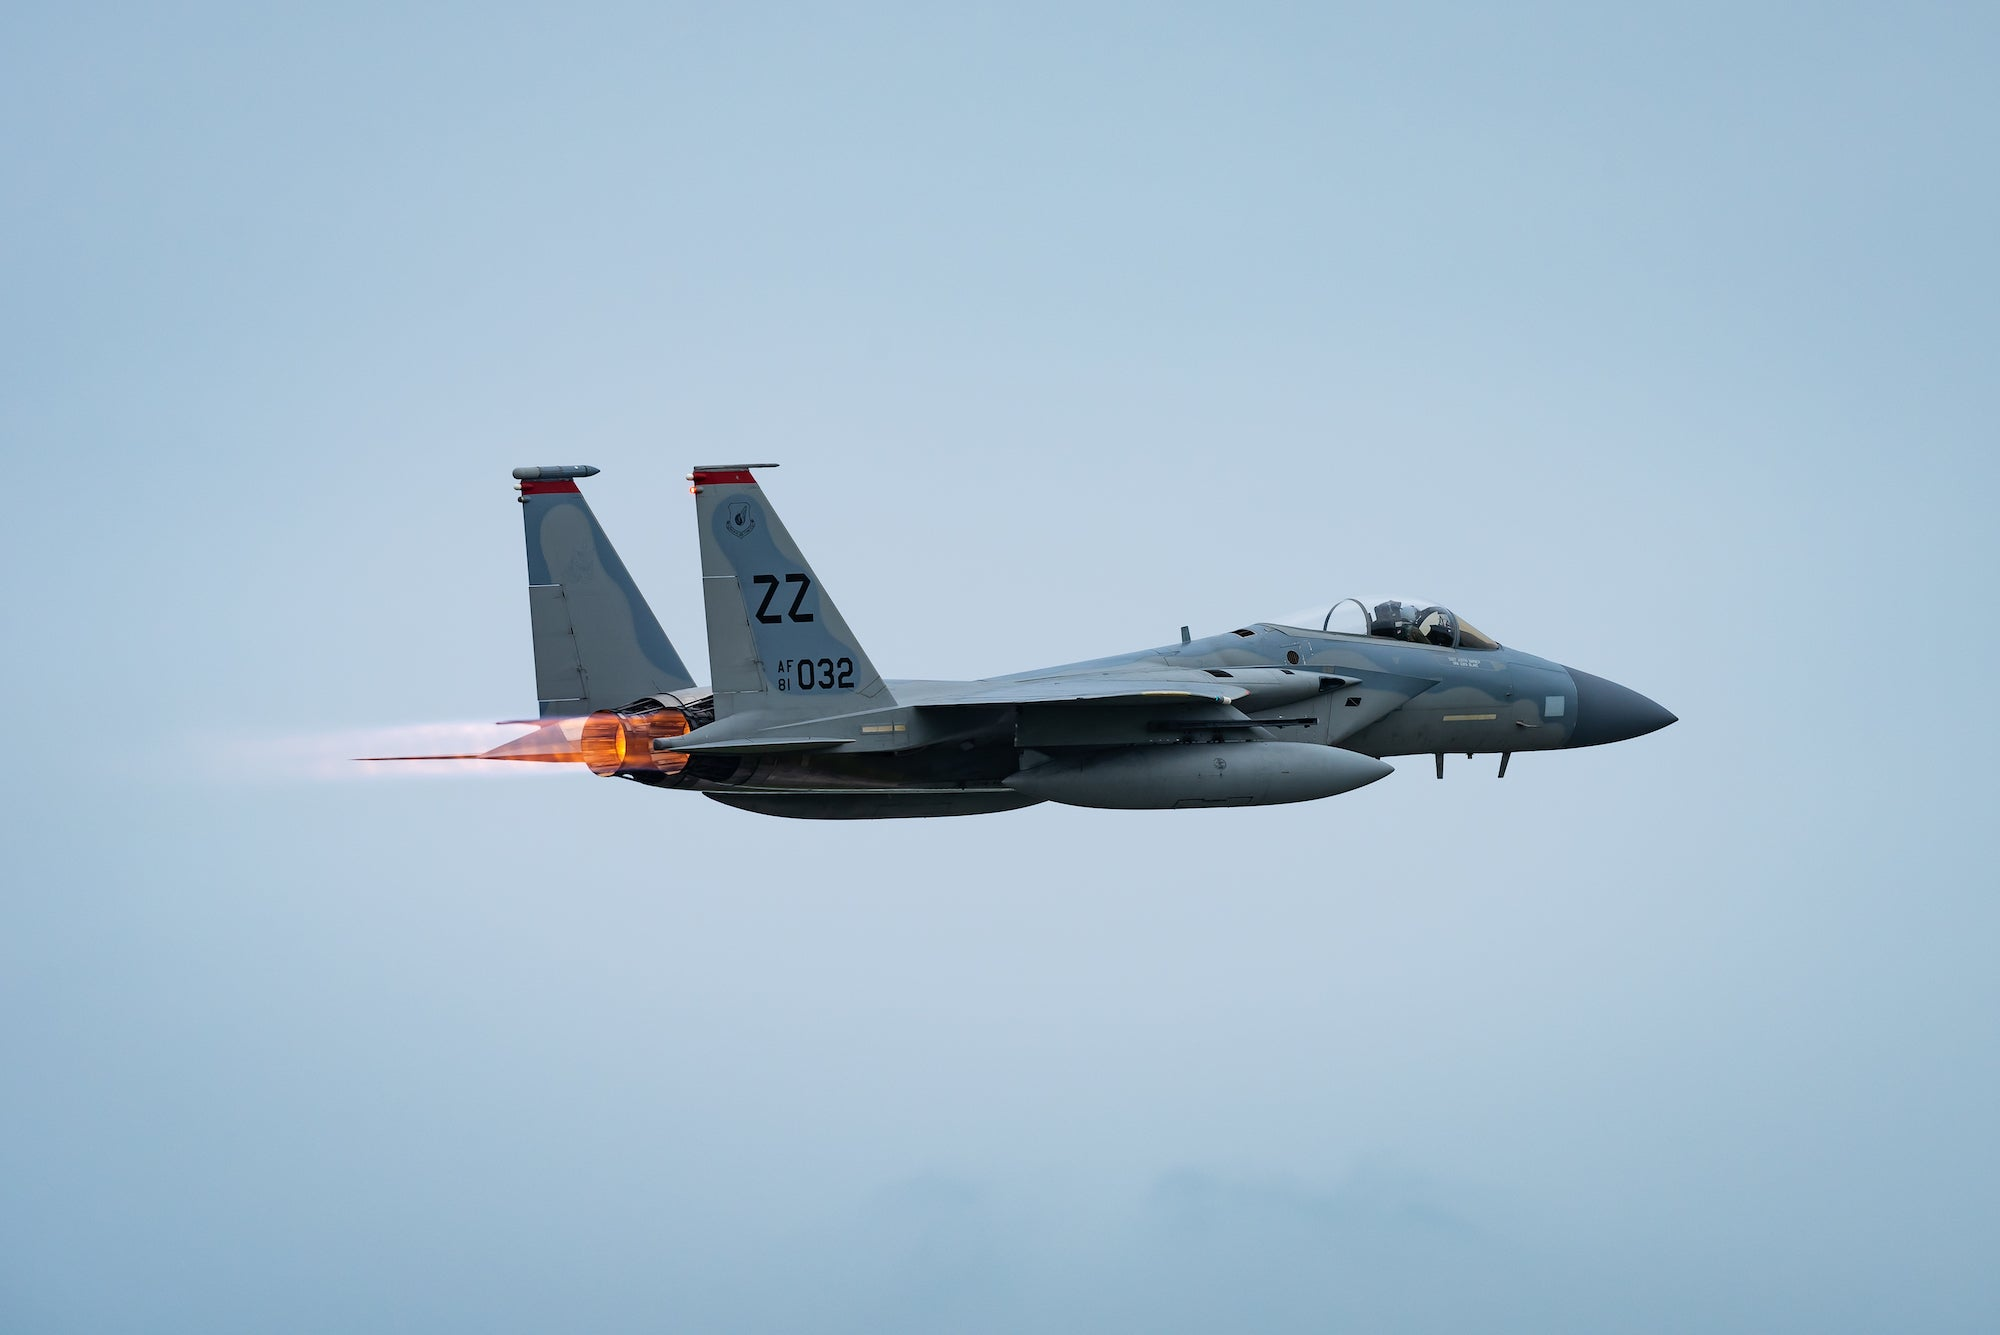 An F-15C Eagle fighter jet takes off.